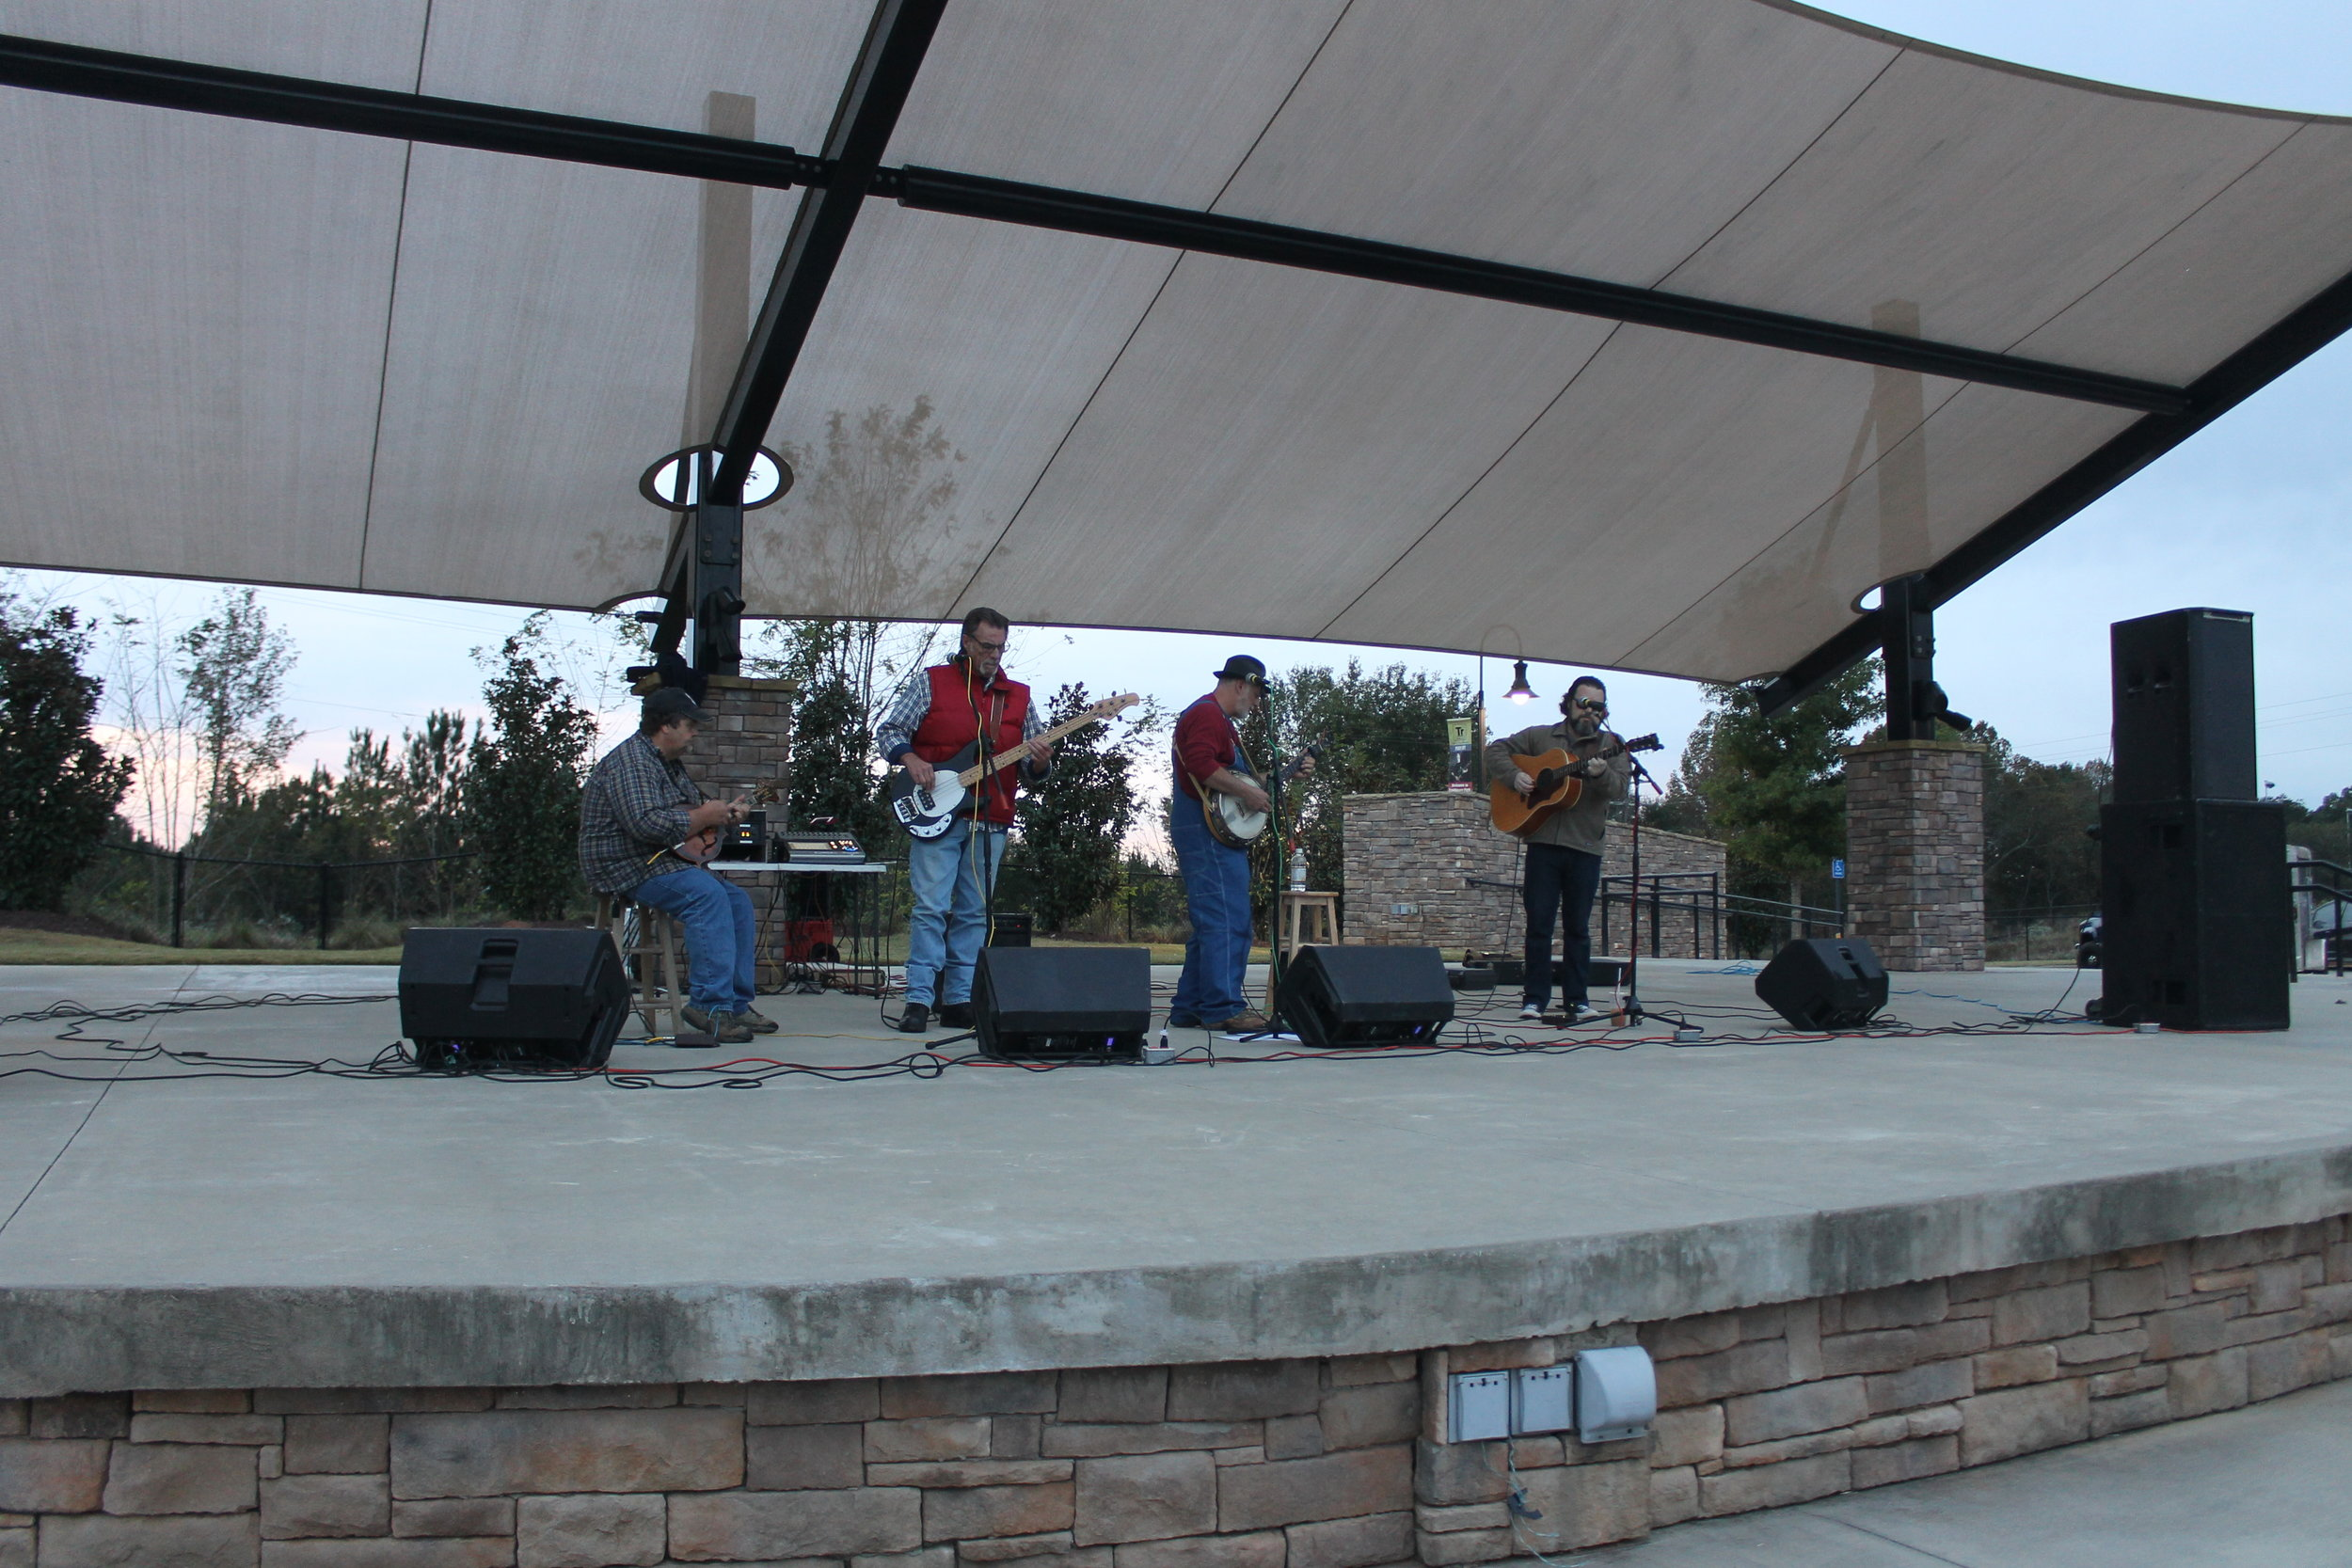 The Grassbackers performed late in to the night as the festival continued.